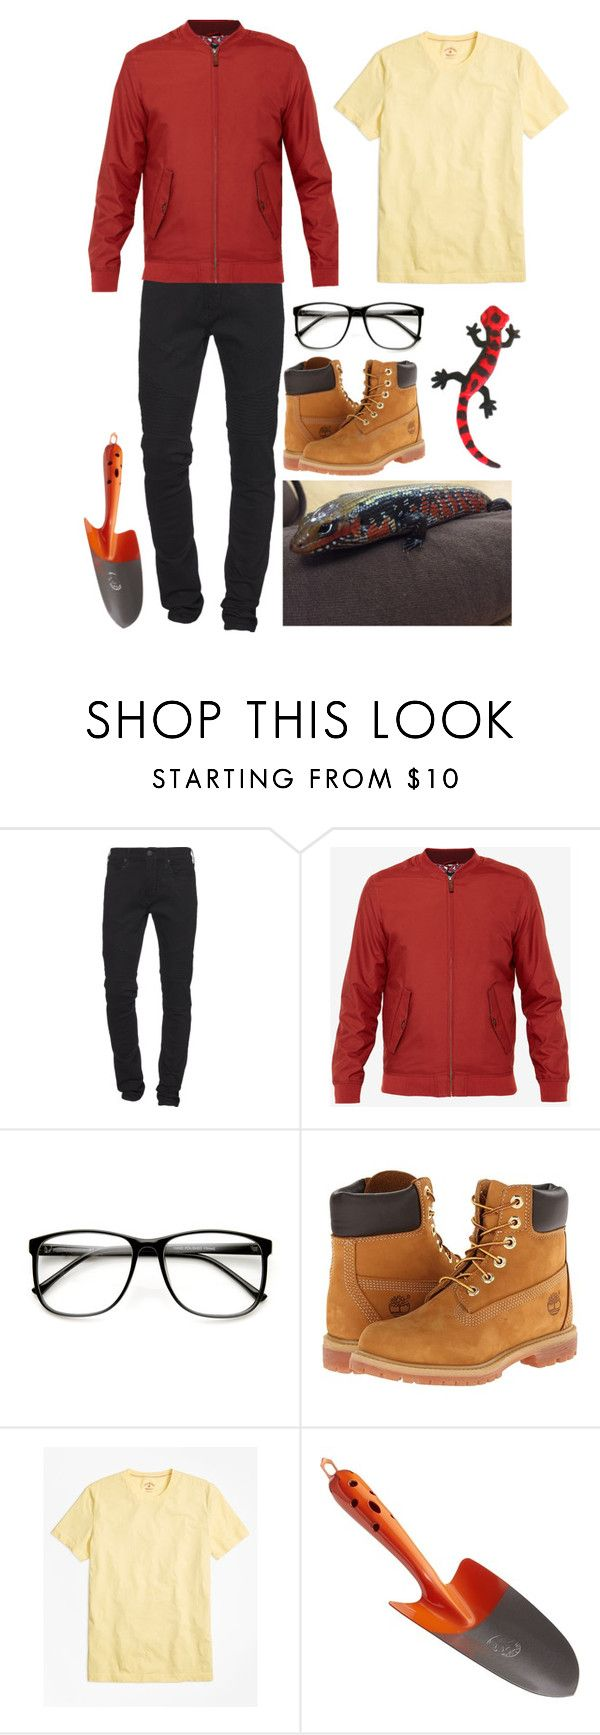 """""""Clarence"""" by thatidiotchild ❤ liked on Polyvore featuring True Religion, Ted Baker, ZeroUV, Timberland, Brooks Brothers, Hansa, CB2, men's fashion and menswear"""